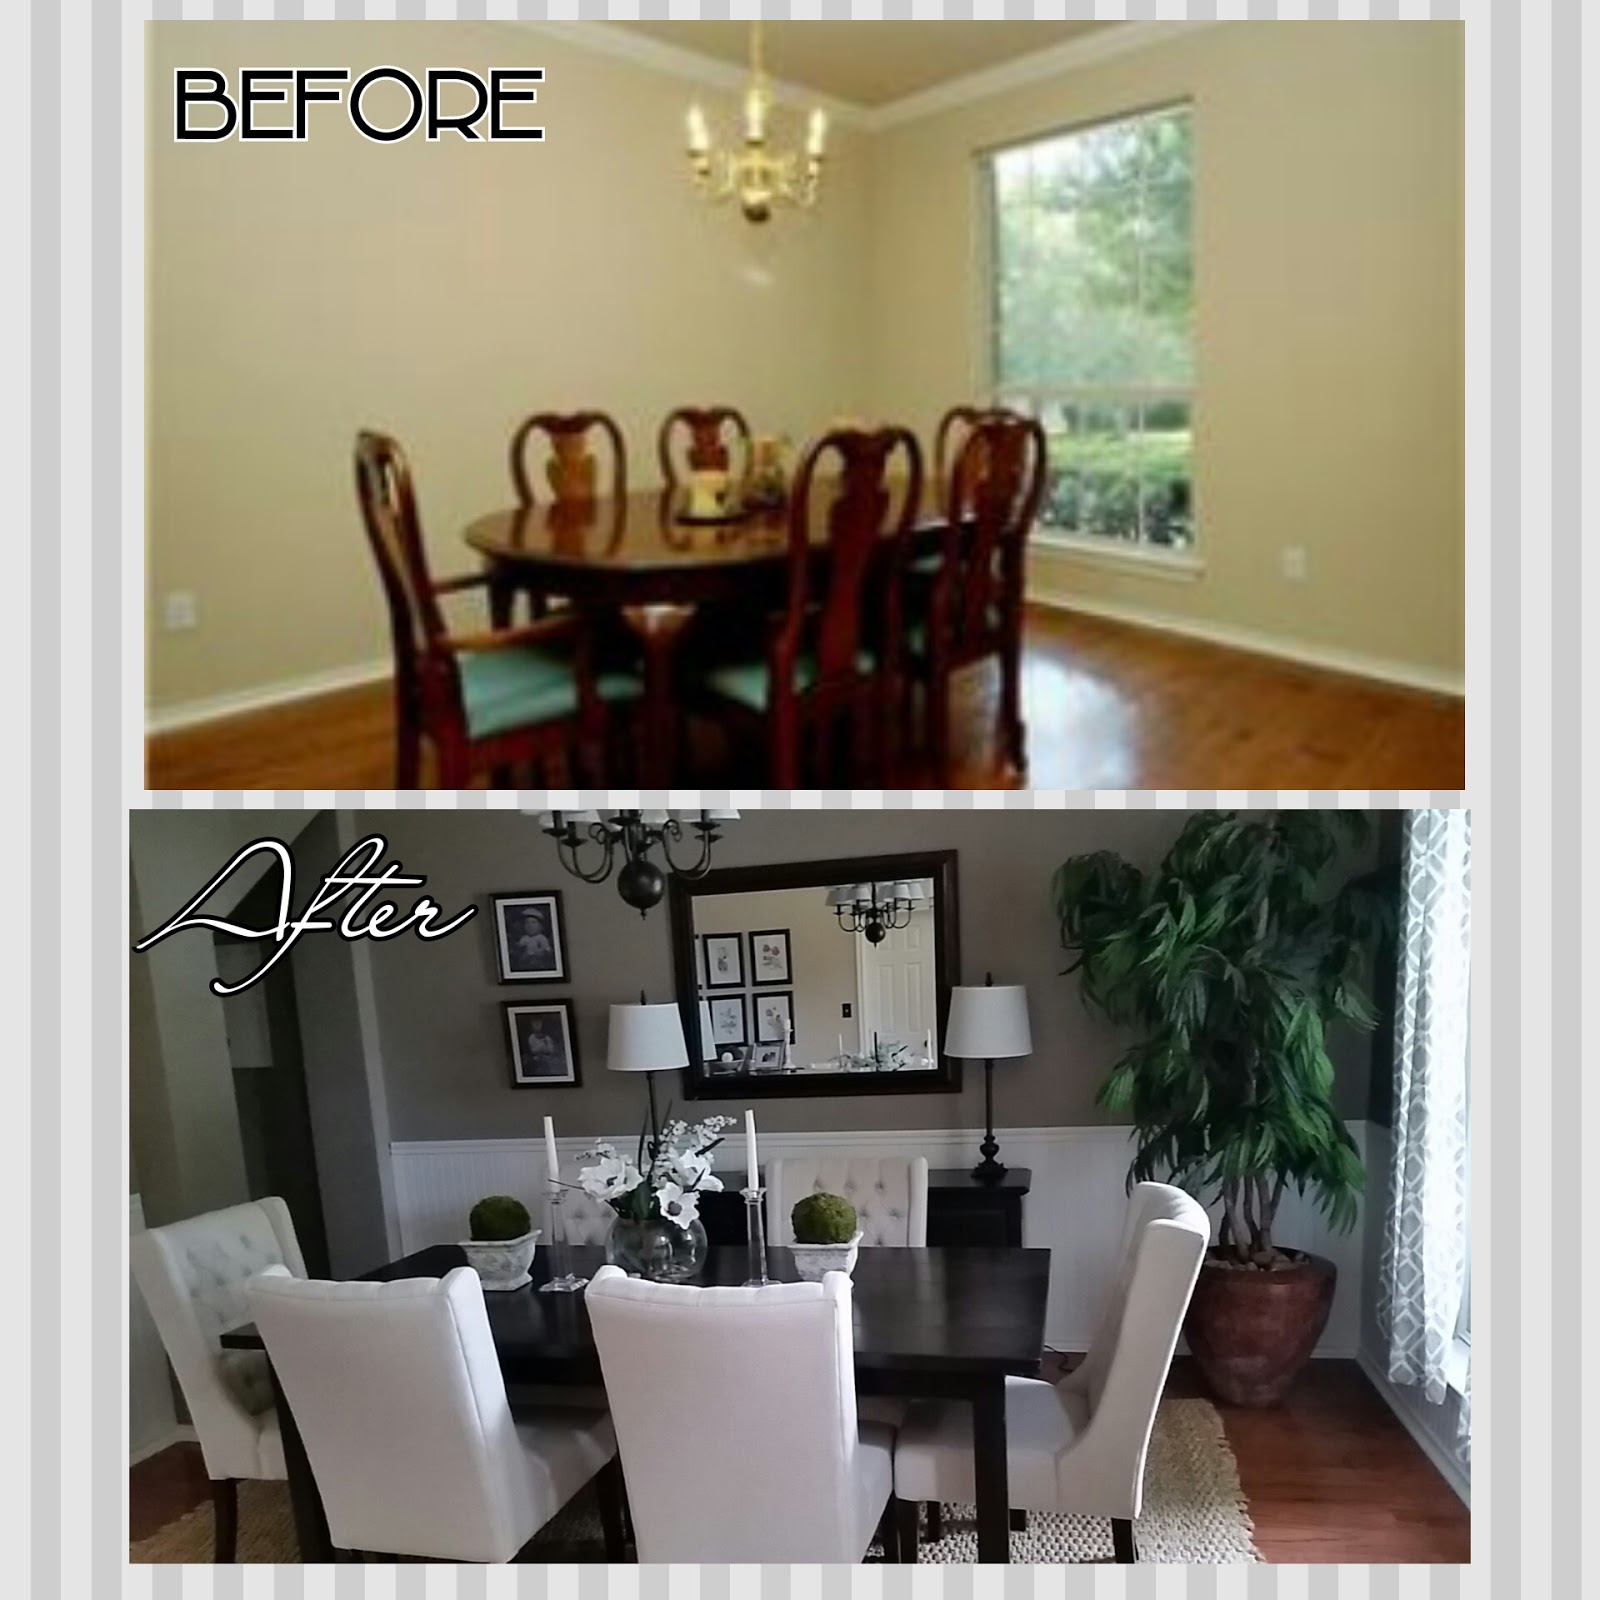 Home Design Ideas Budget: DIYife: Dining Room Makeover On A BUDGET